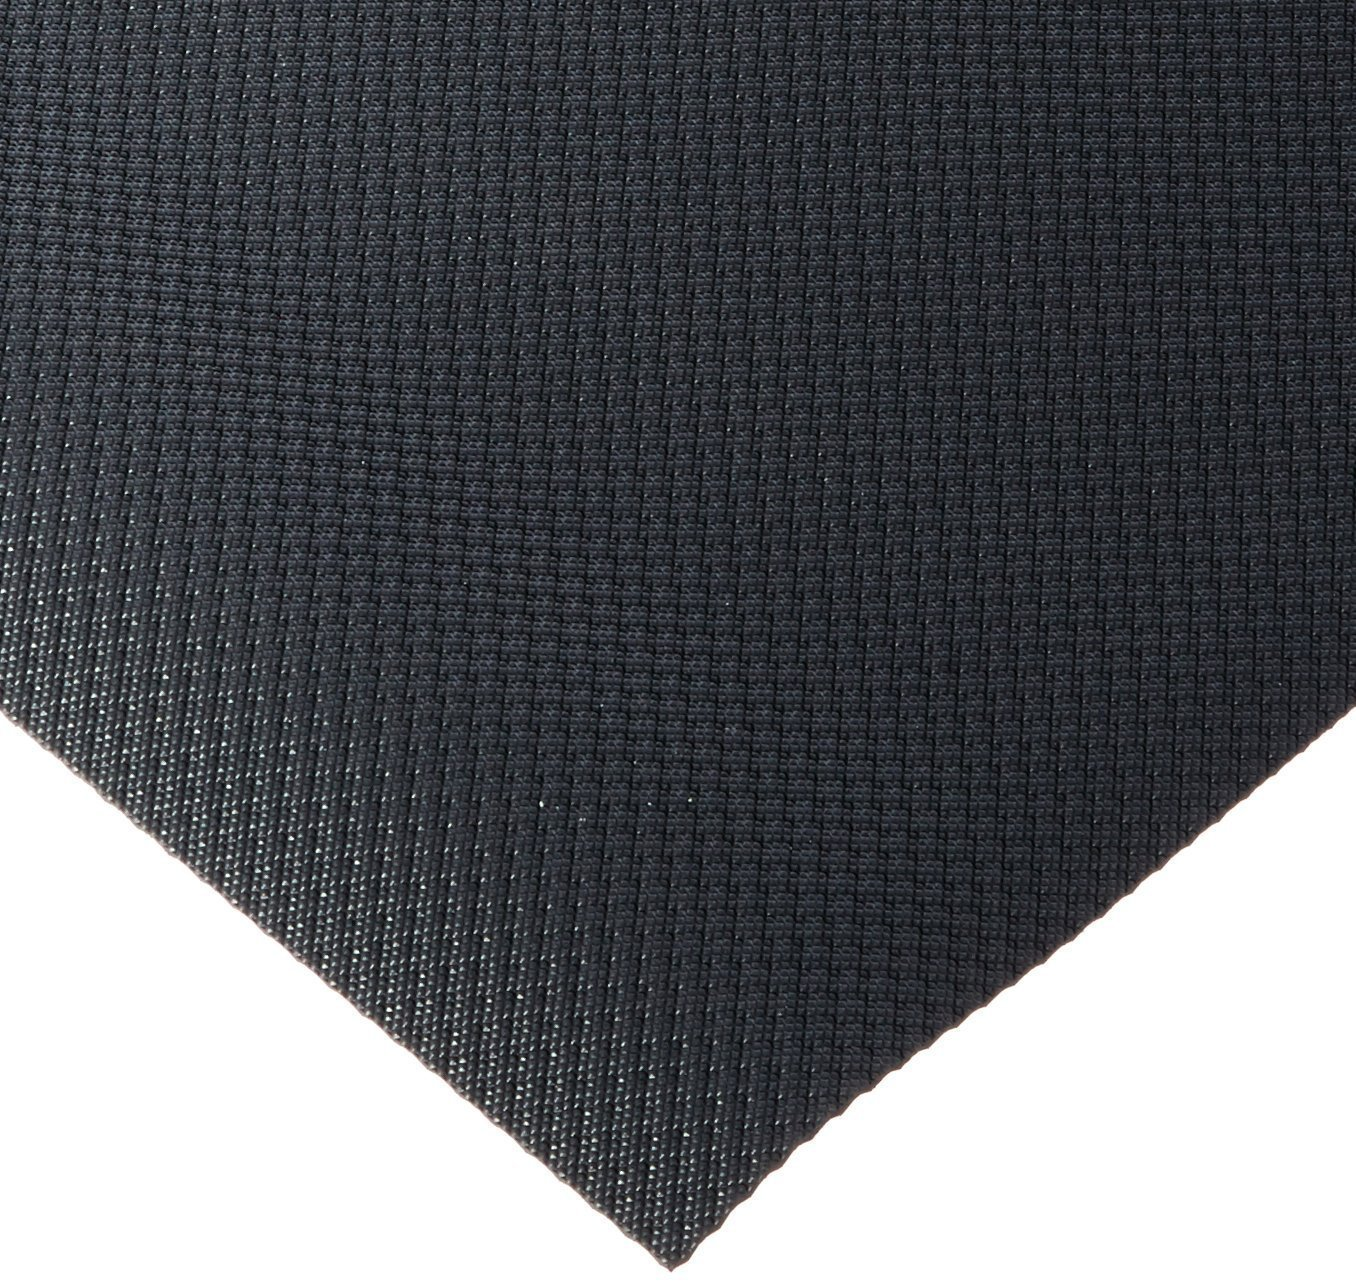 Kennedy Manufacturing Heavy Duty/Deluxe Top Mat, Black